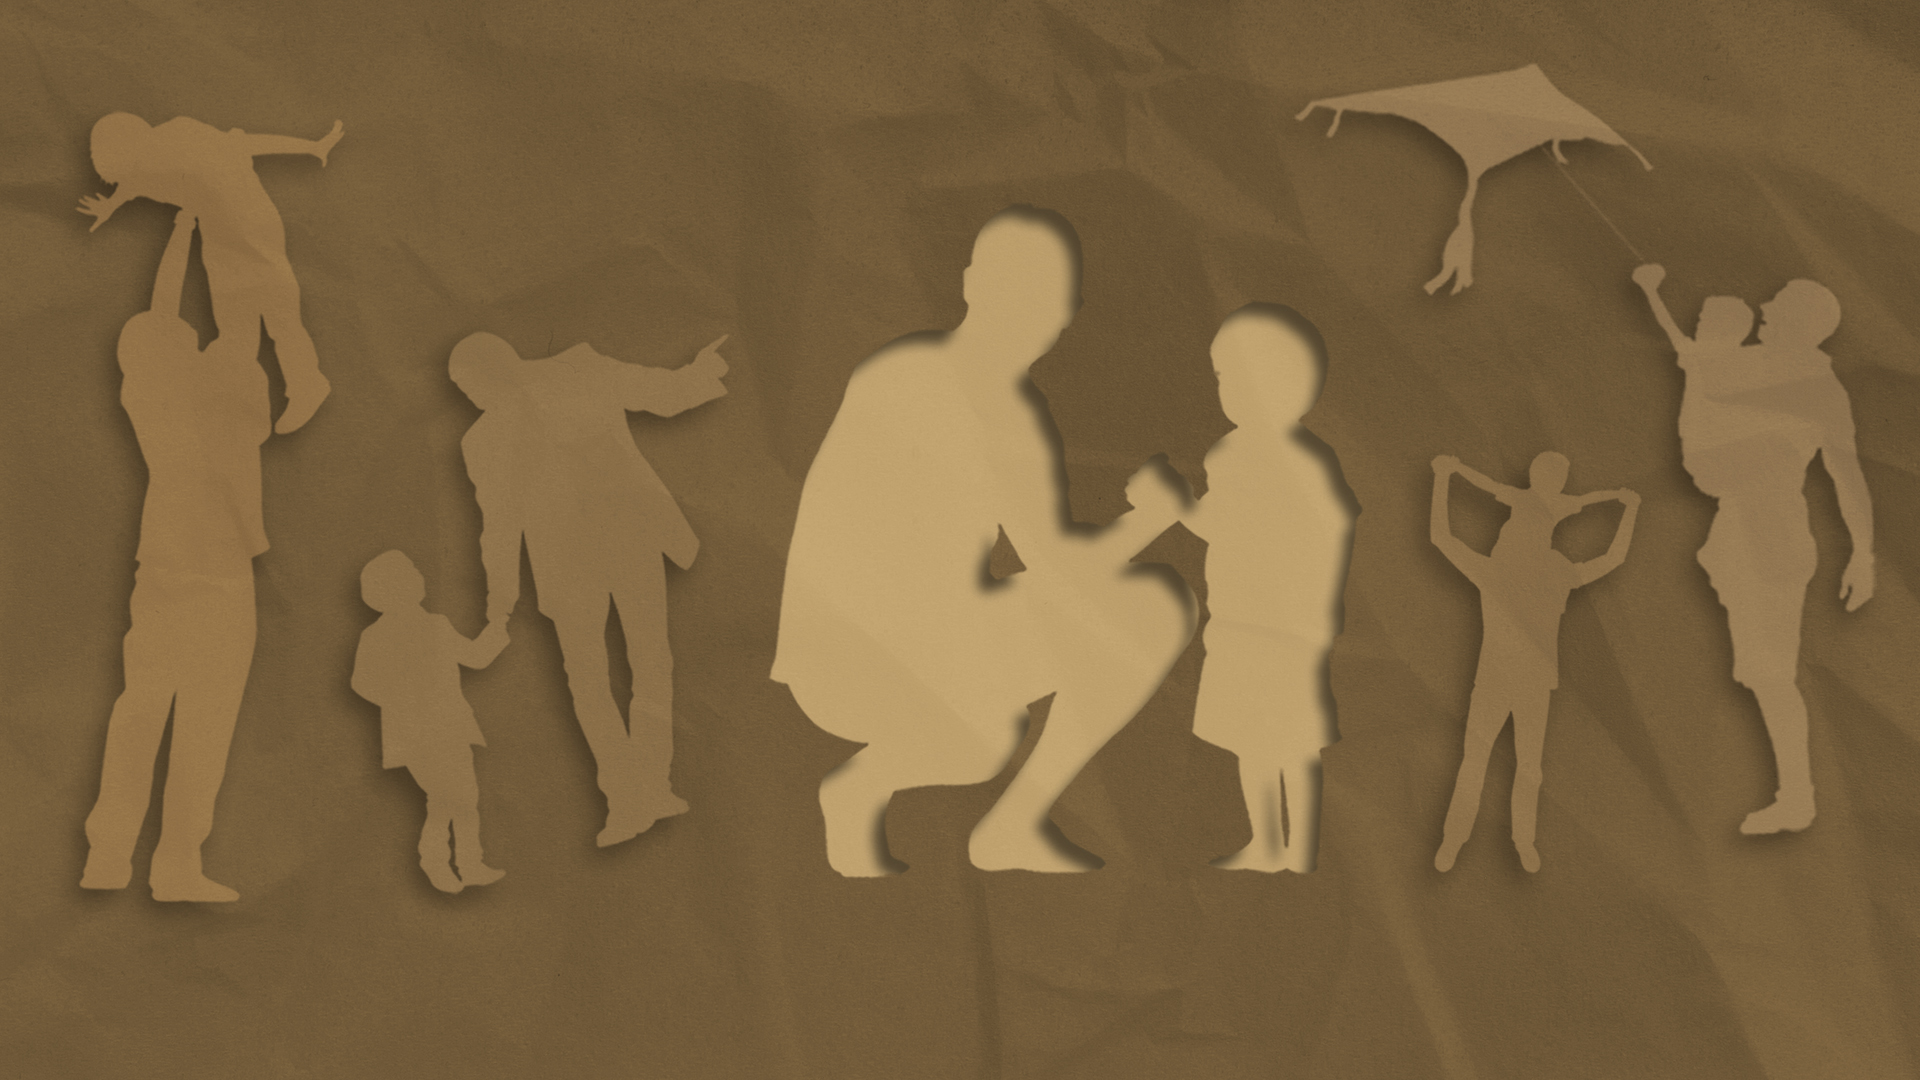 Healing Fatherhood - images of Father child activities that seem perfect on a brown paper texture